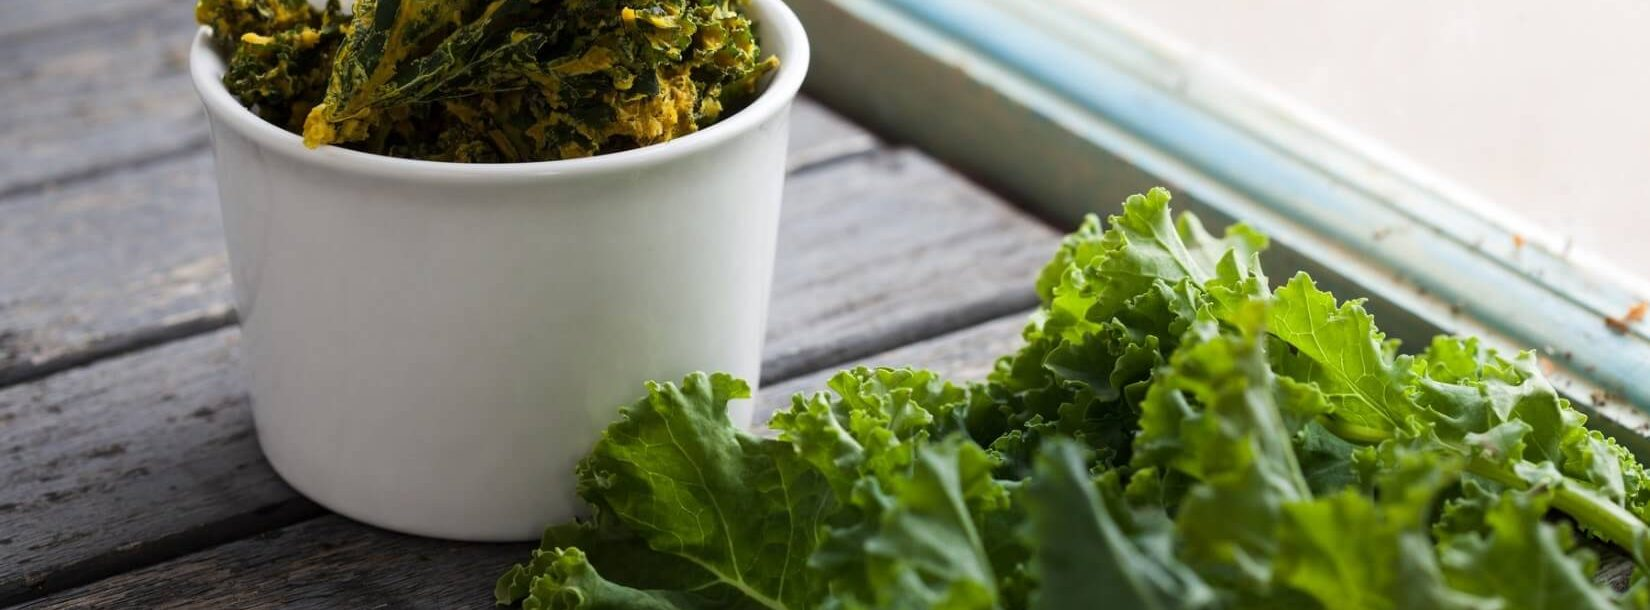 Quick and Health Kale Chips Recipe